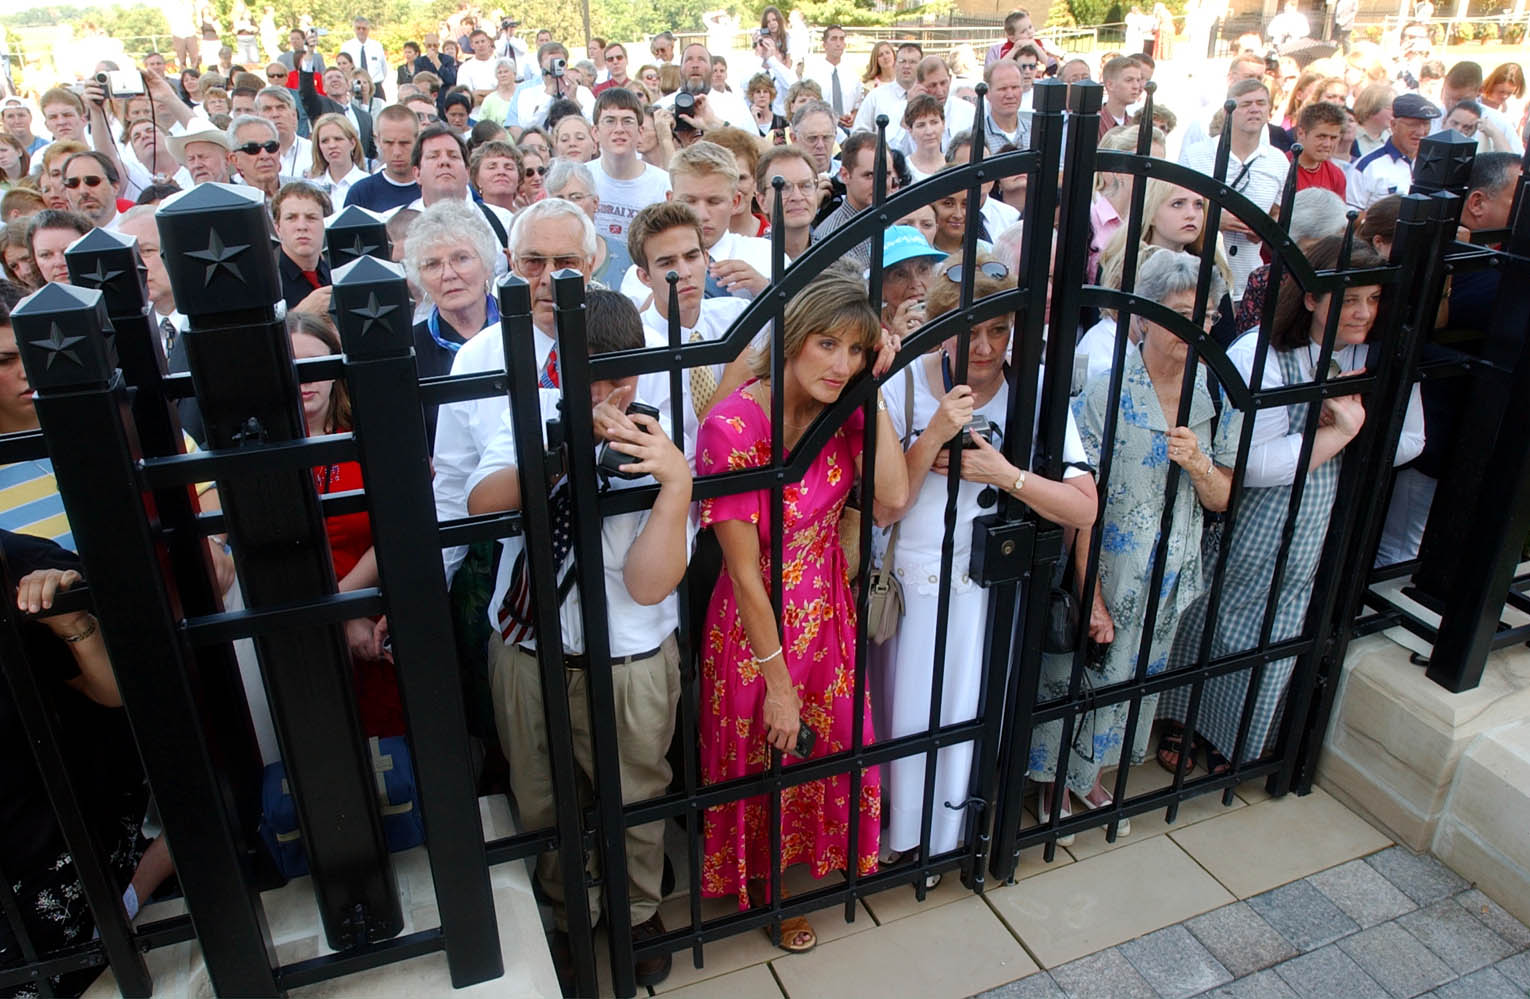 Crowds press against the temple gate listening to President Hinckley at a press conference at the Nauvoo LDS Temple June 27th, 2002.